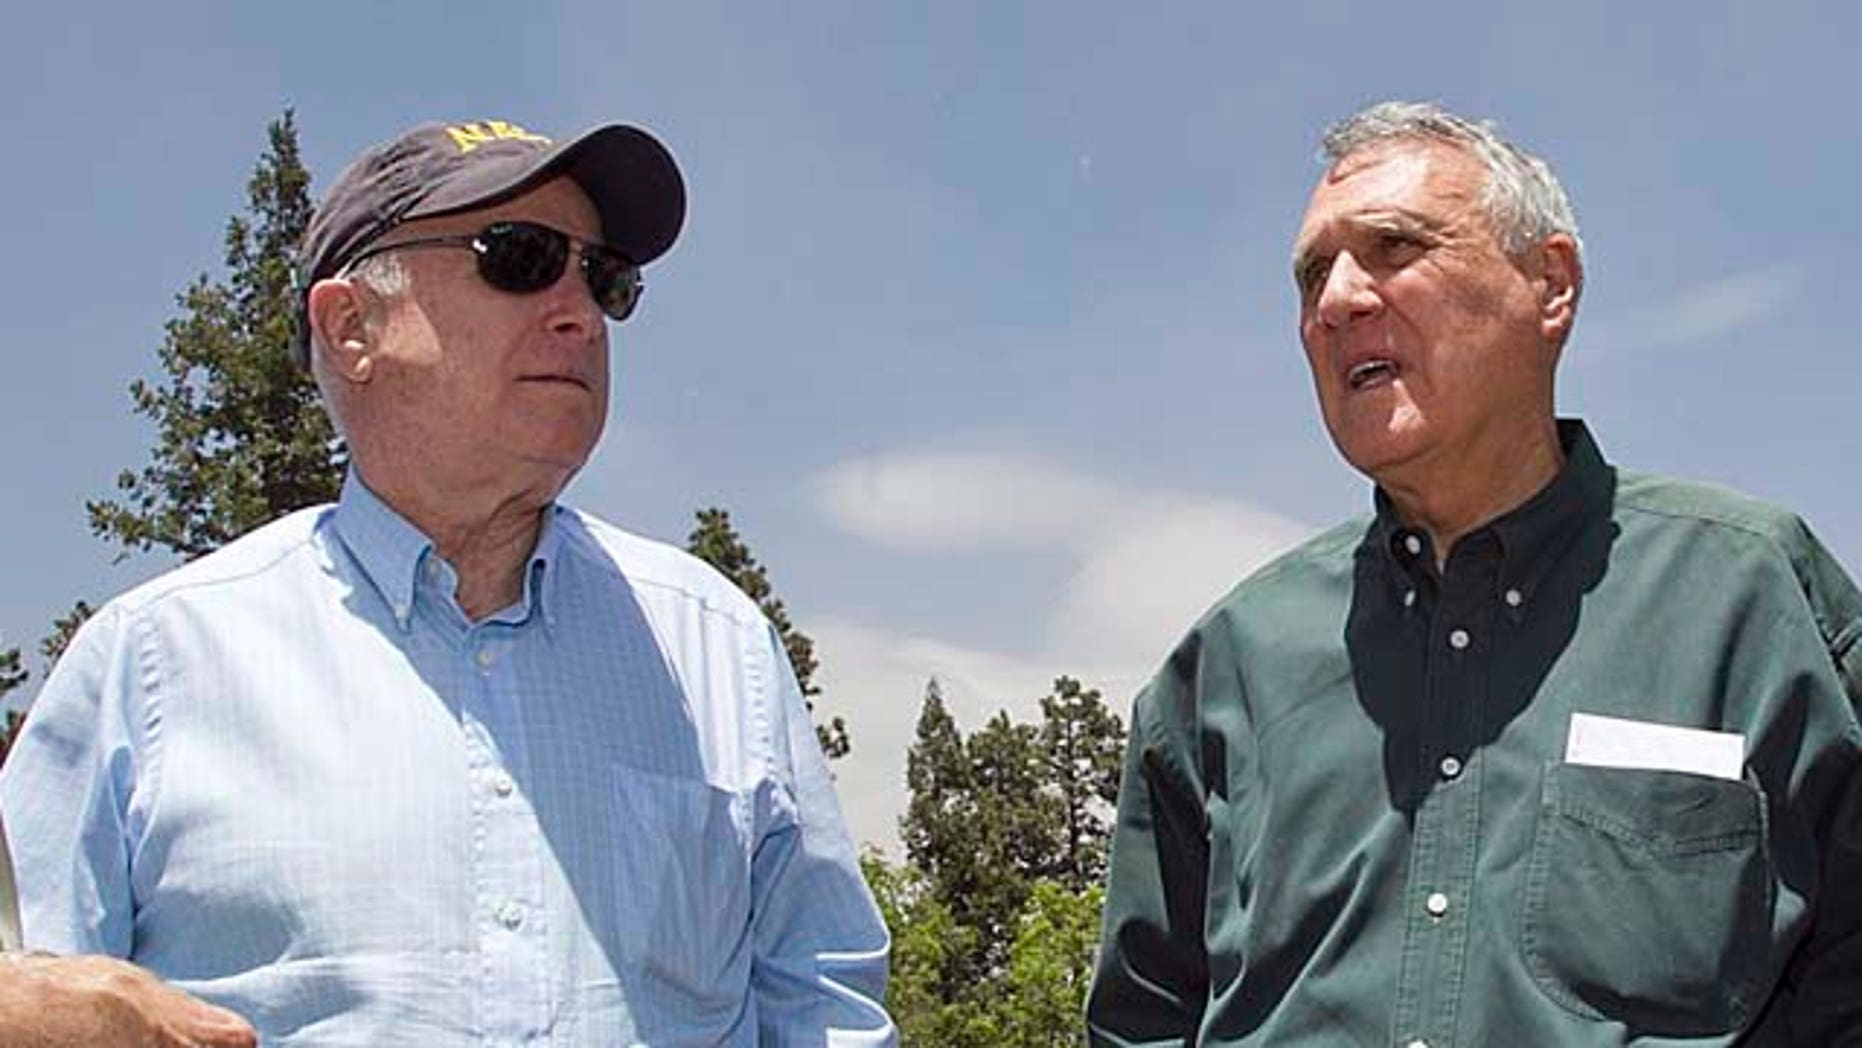 Sen. John McCain, right, with Sen. Jon Kyl in the forest surrounding Alpine, Ariz. Saturday, June 18, 2011 during a tour of the burned areas of the Wallow Fire. The fire has burned more than 500,000 acres in eastern Arizona. (AP Photo/The Arizona Republic, Tom Tingle) MARICOPA COUNTY OUT; MAGS OUT; NO SALES